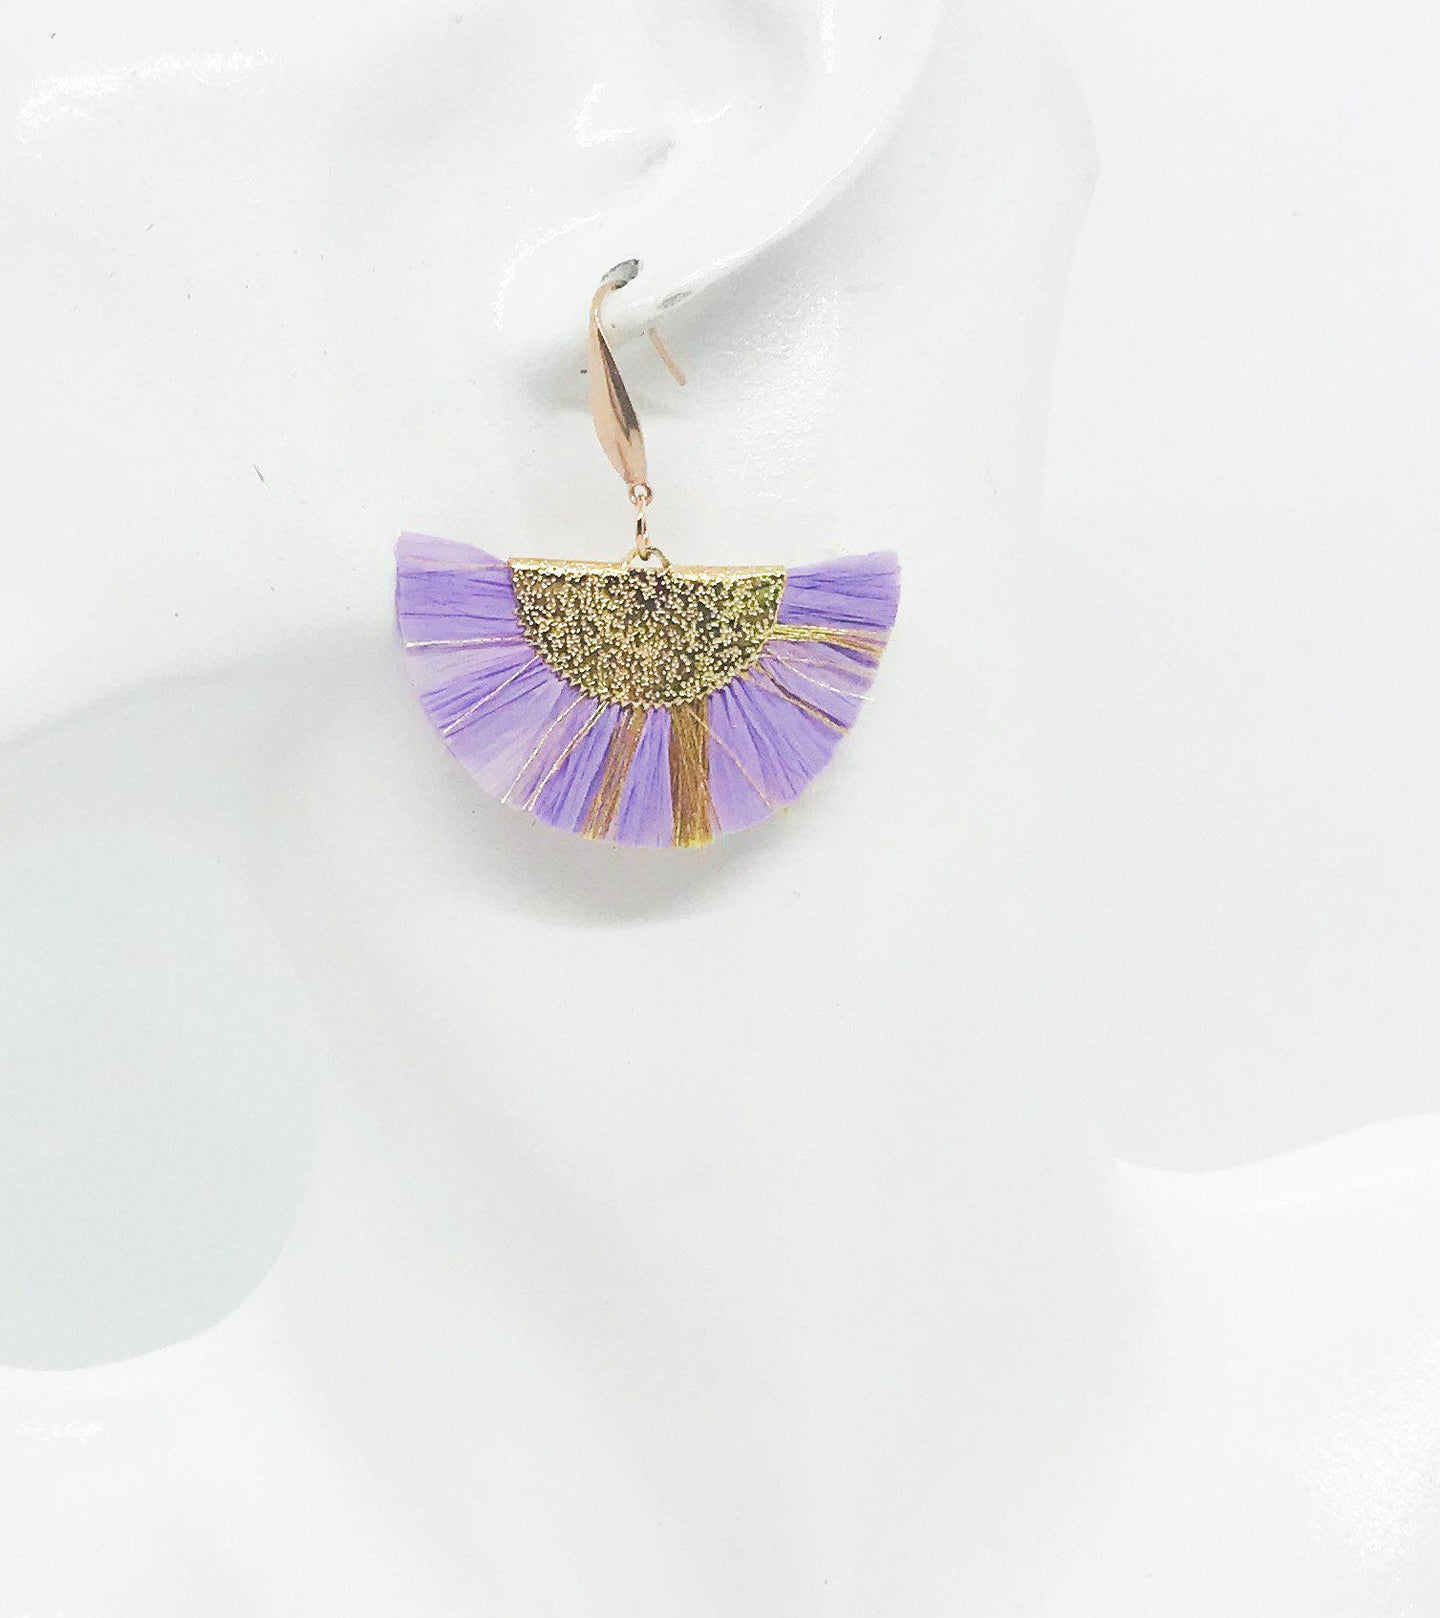 Lavender and Gold Fan Shaped Tassel Earrings - E19-1130